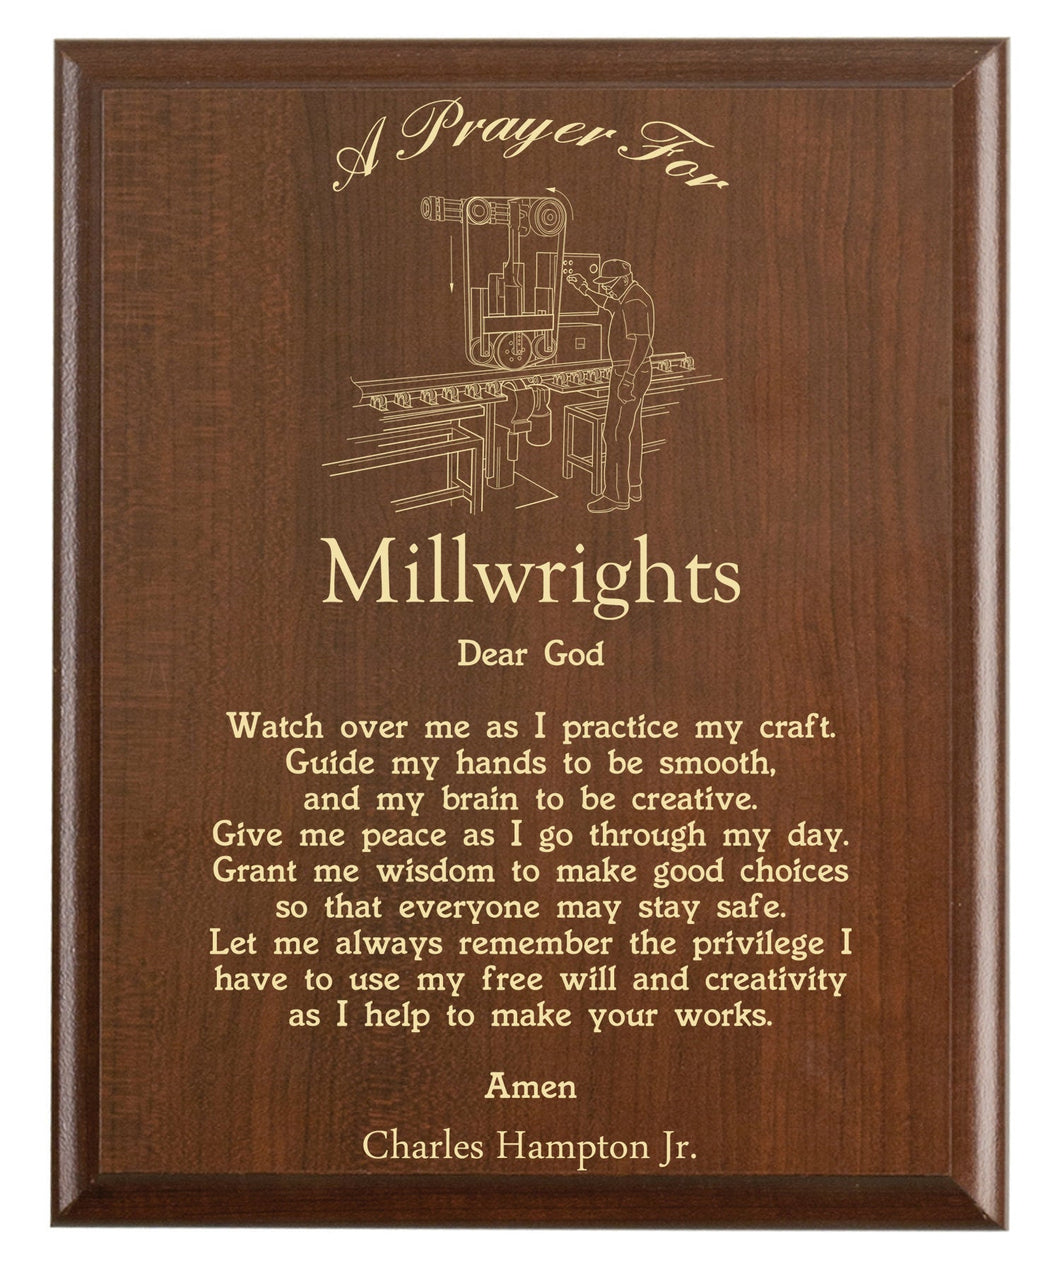 Christian prayer for a millwright with industry logo and free personalization. Cherry finish with laser engraved text.